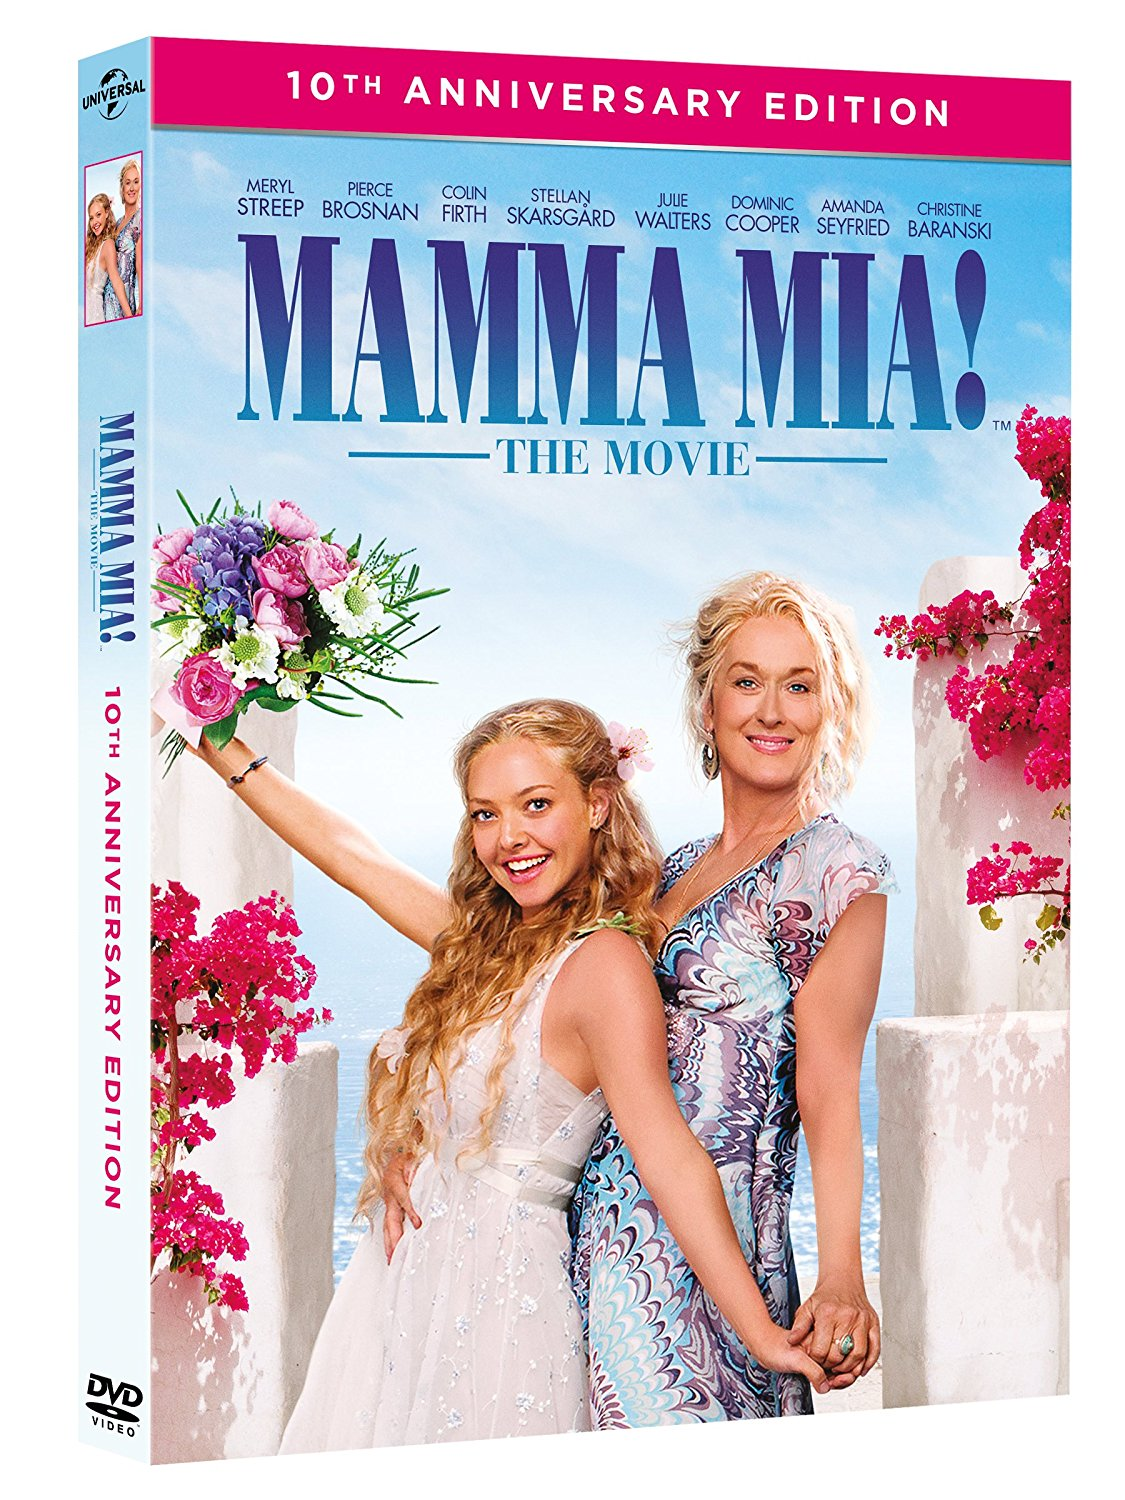 MAMMA MIA! (10TH ANNIVERSARY EDITION) (2 DVD) (DVD)